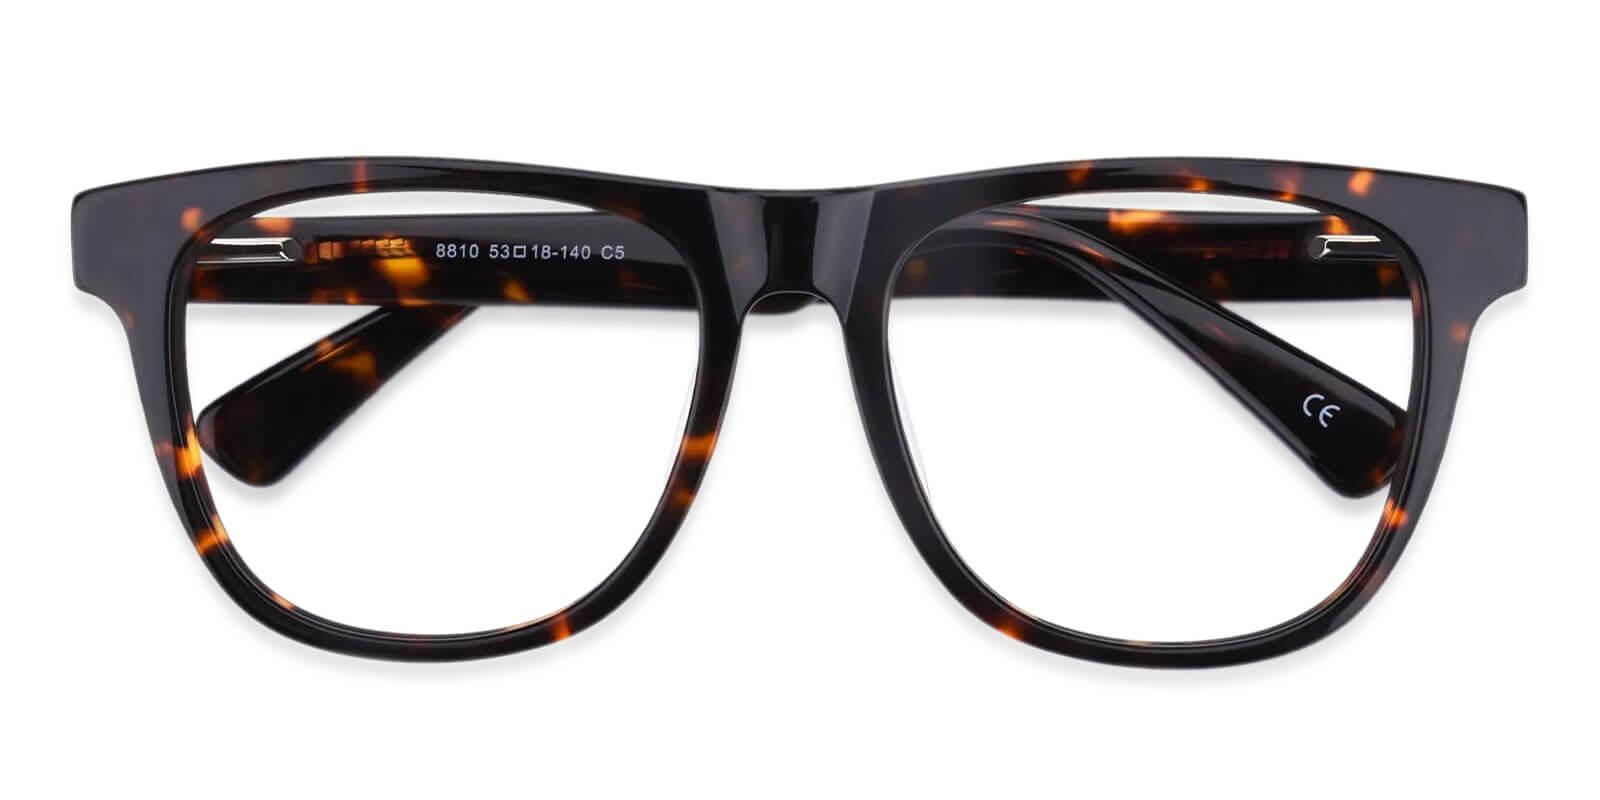 New Florence Tortoise Acetate Eyeglasses , SpringHinges , UniversalBridgeFit Frames from ABBE Glasses